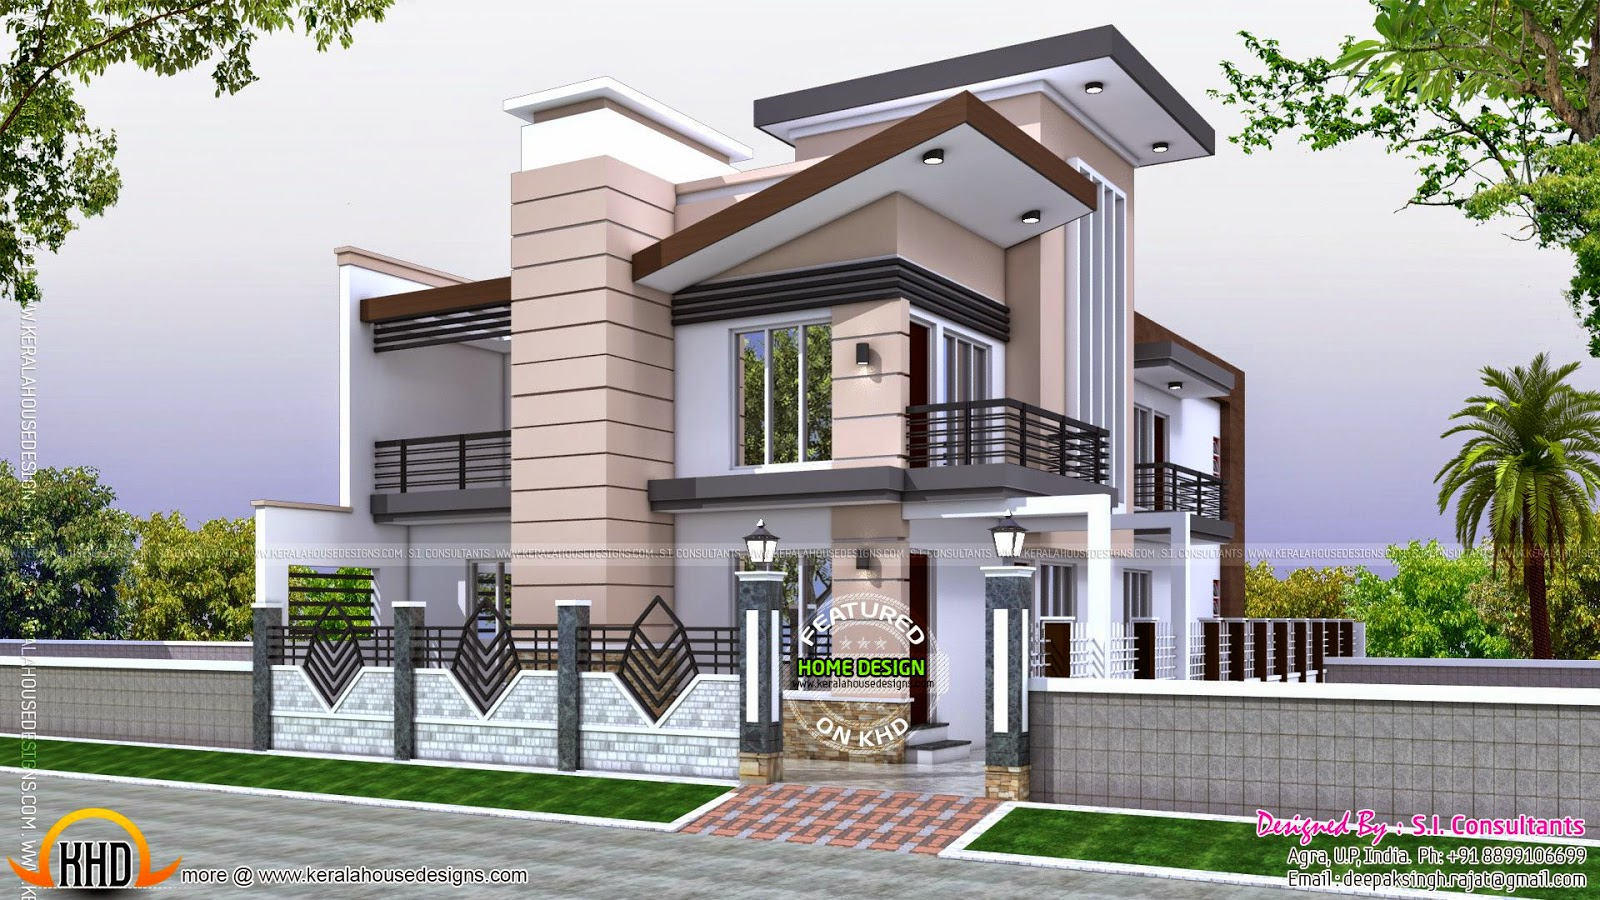 Indian home modern style kerala home design and floor plans Indian house front design photo